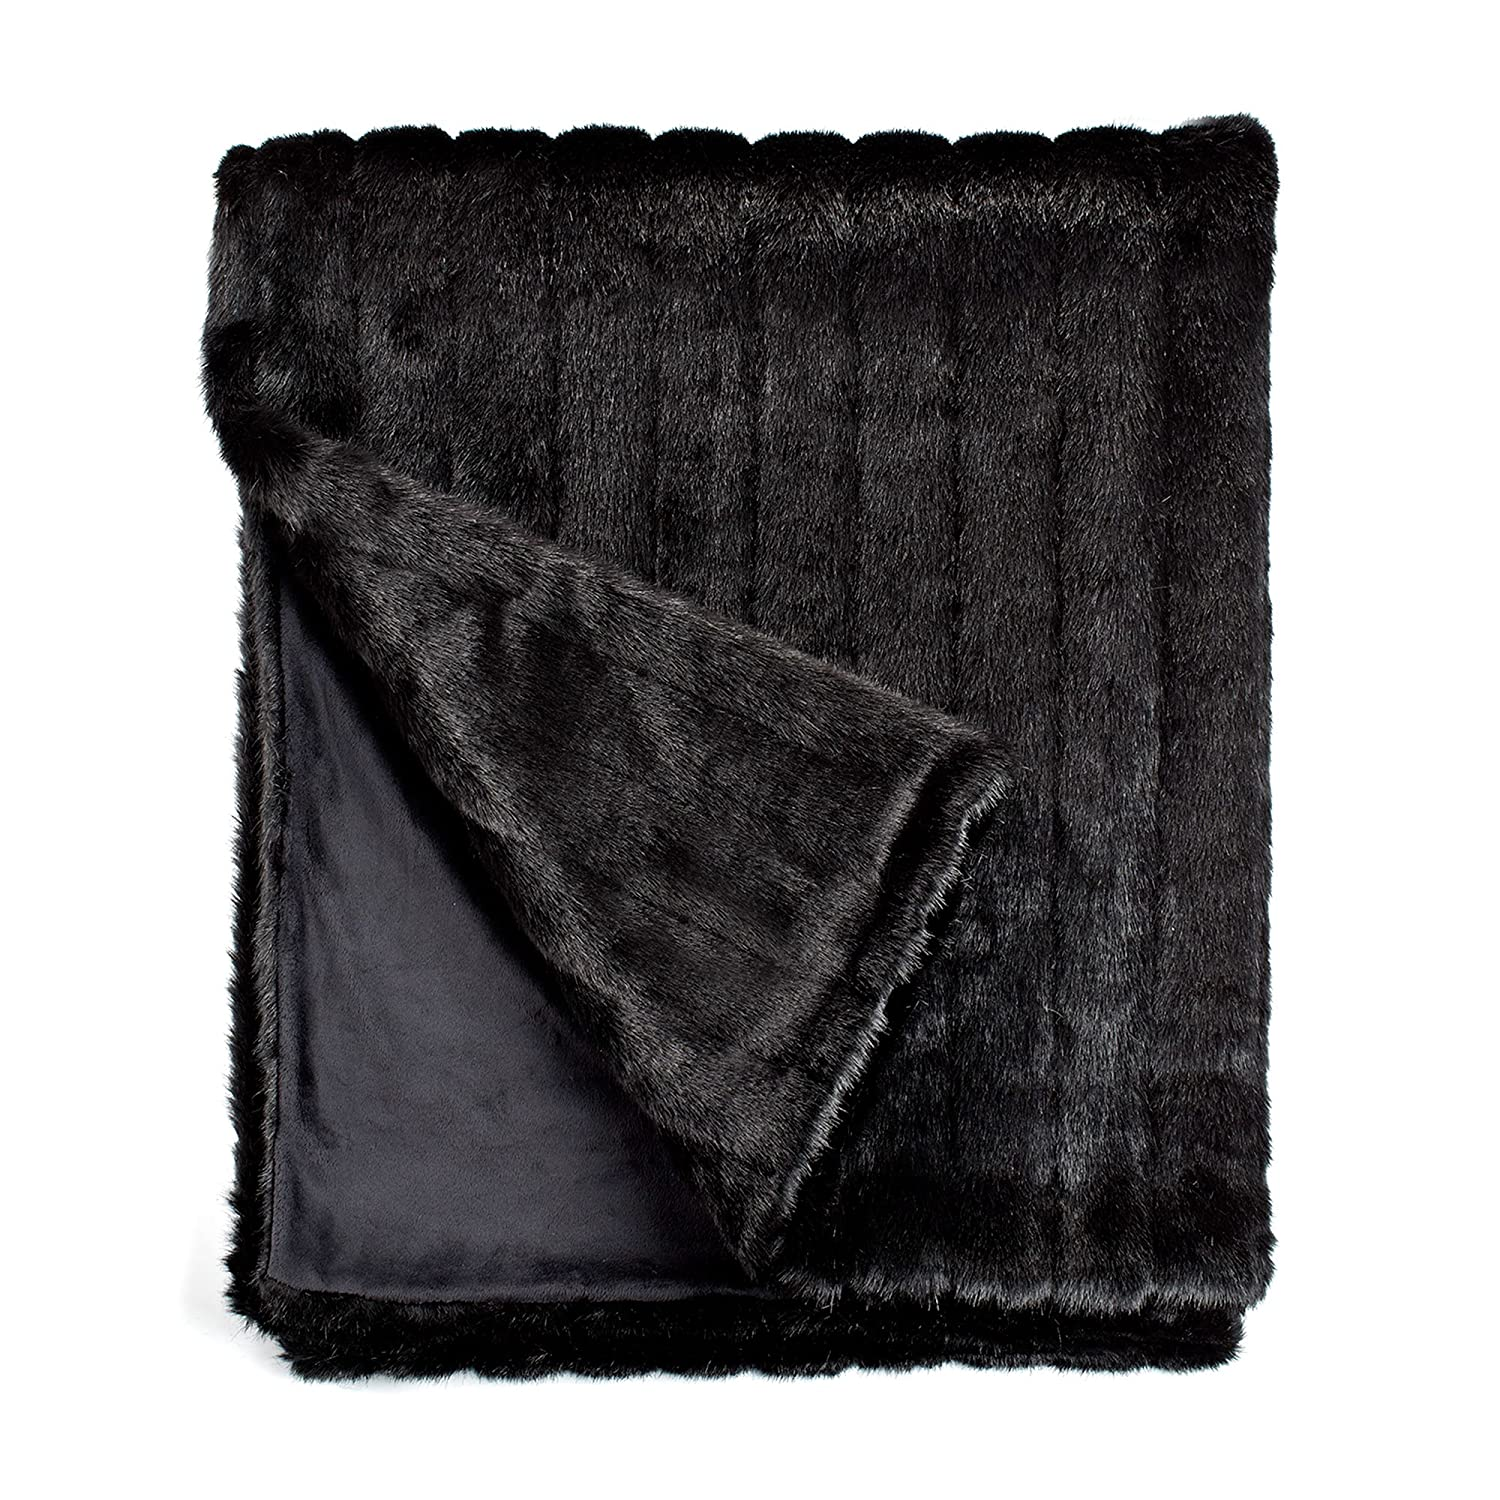 "Fabulous Furs: Faux Fur Luxury Throw Blanket, Black Mink, Available in generous sizes 60""x60"", 60""x72"" and 60""x86"", by Donna Salyers"